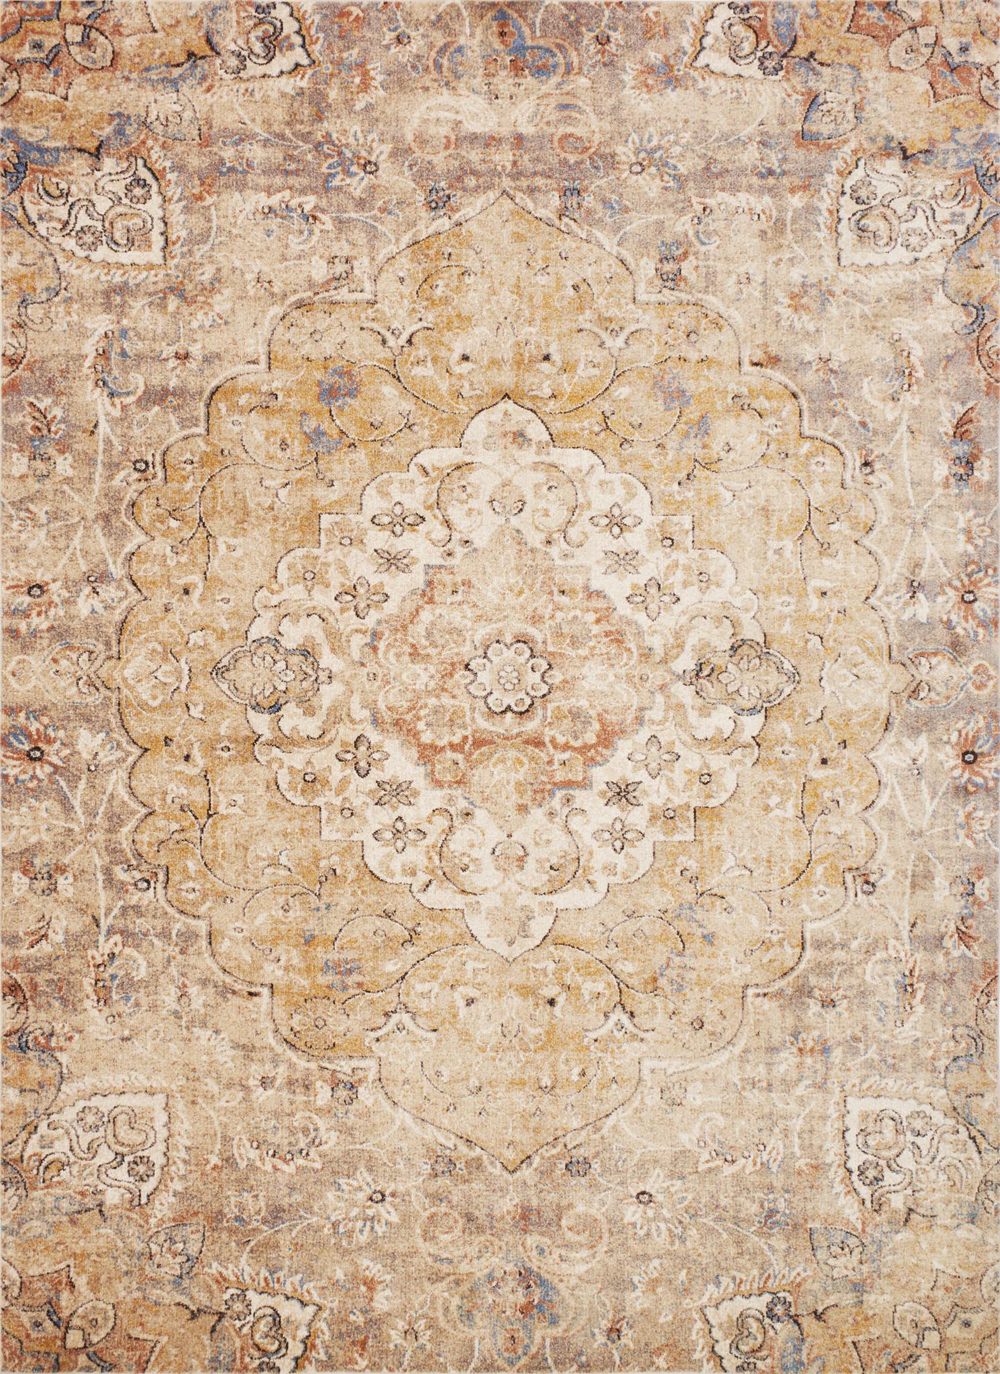 Magnolia Home TRINITY TY-07 ANT IVORY - SAND Rug